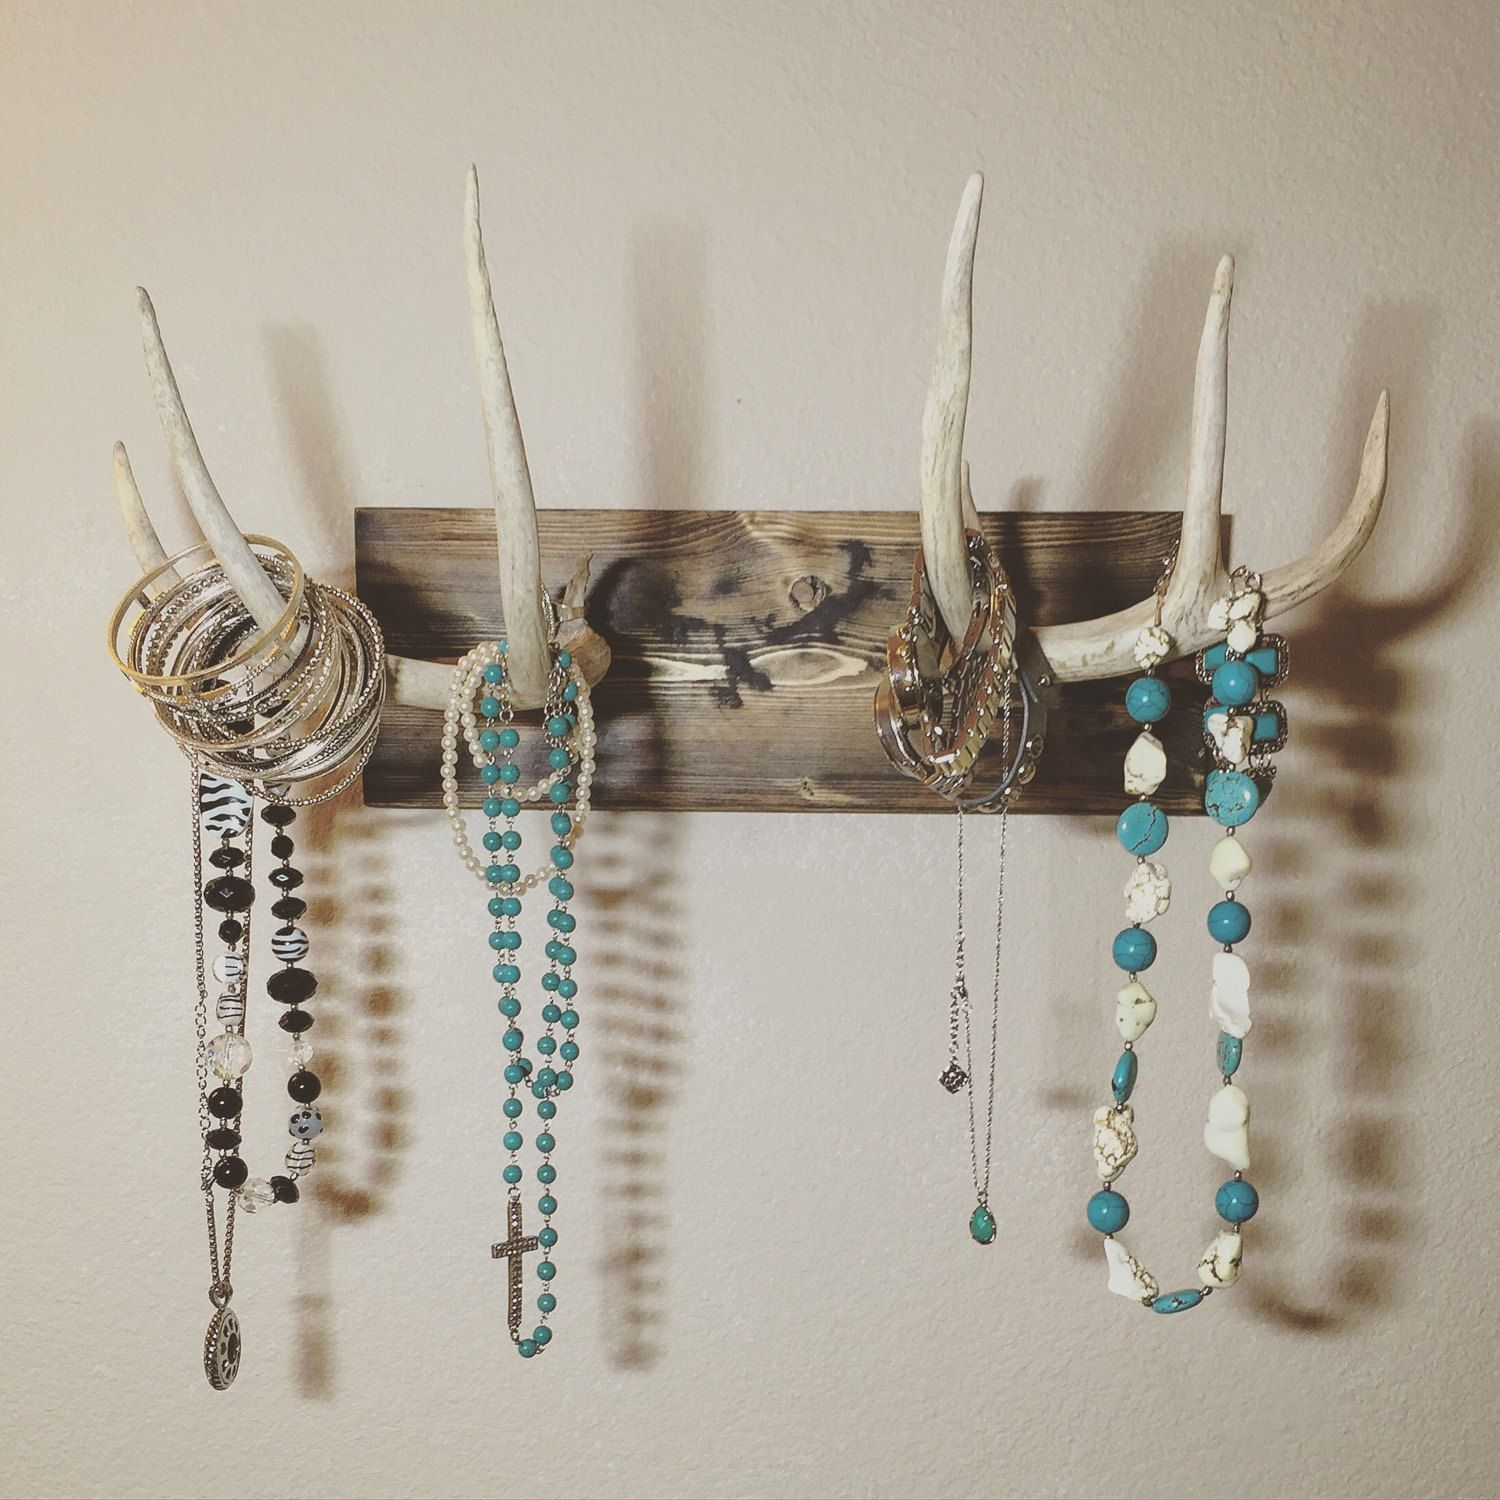 mounted antler jewelry holder real deer by TurquoiseOwlDesign